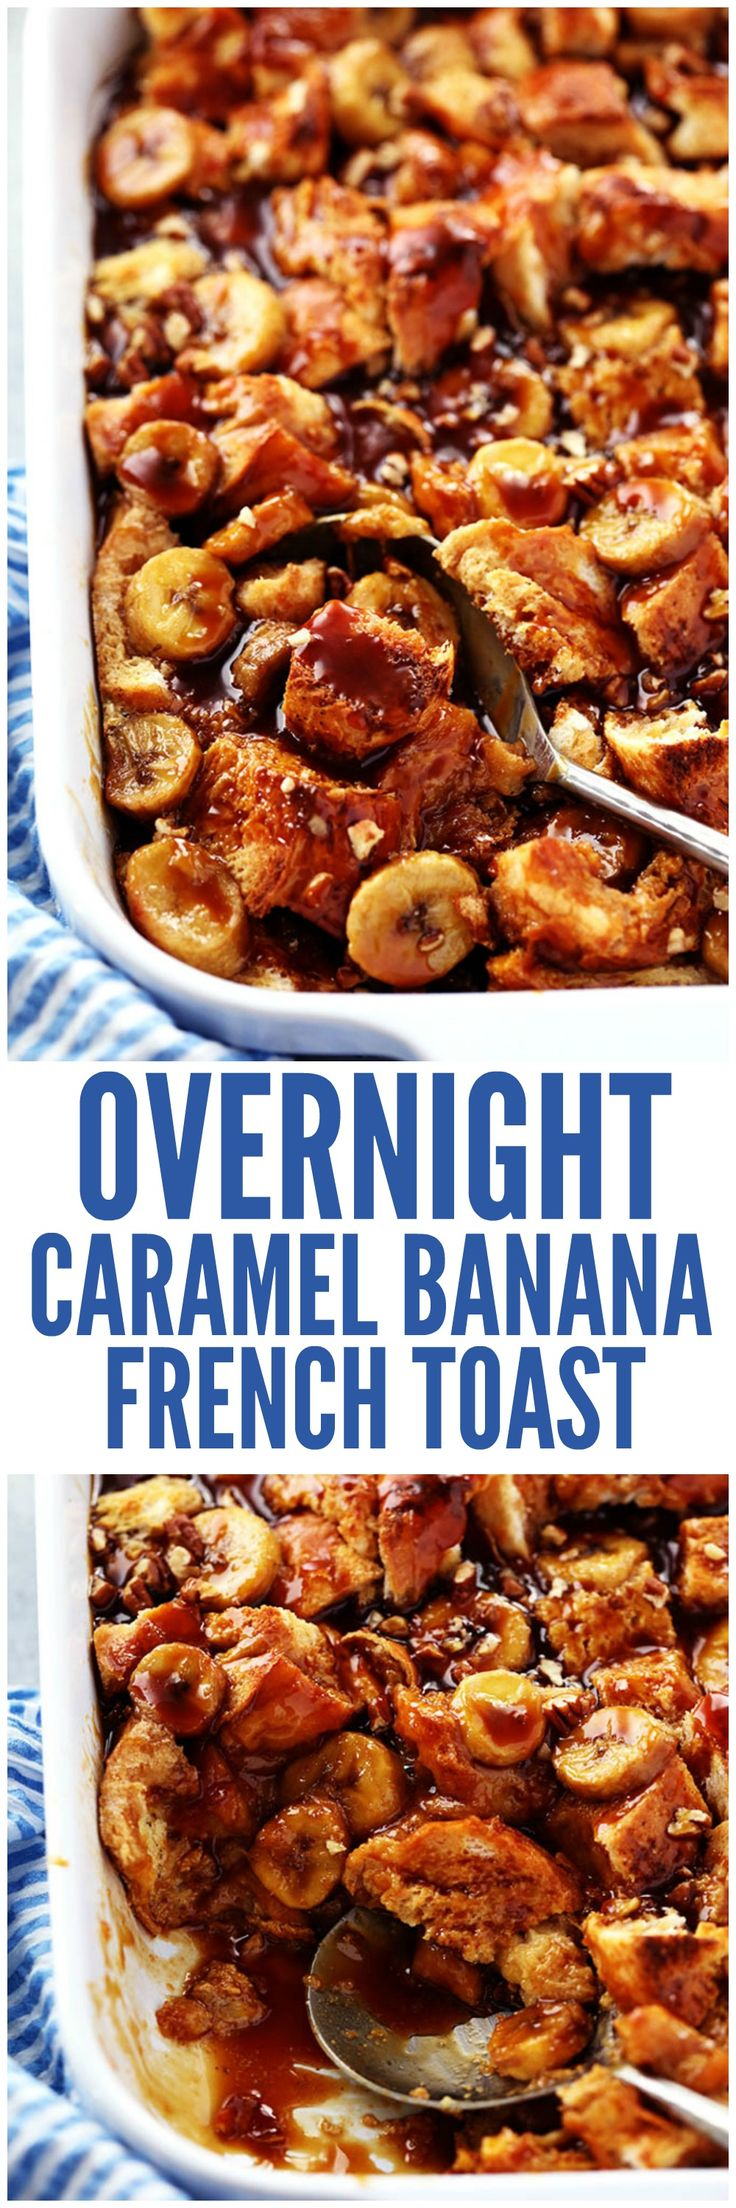 Overnight Caramel Banana French Toast with Caramel Syrup is prepped the night before and ready in the morning. Filled with a caramel banana sauce and topped with homemade caramel syrup this is sure to become a new family favorite!